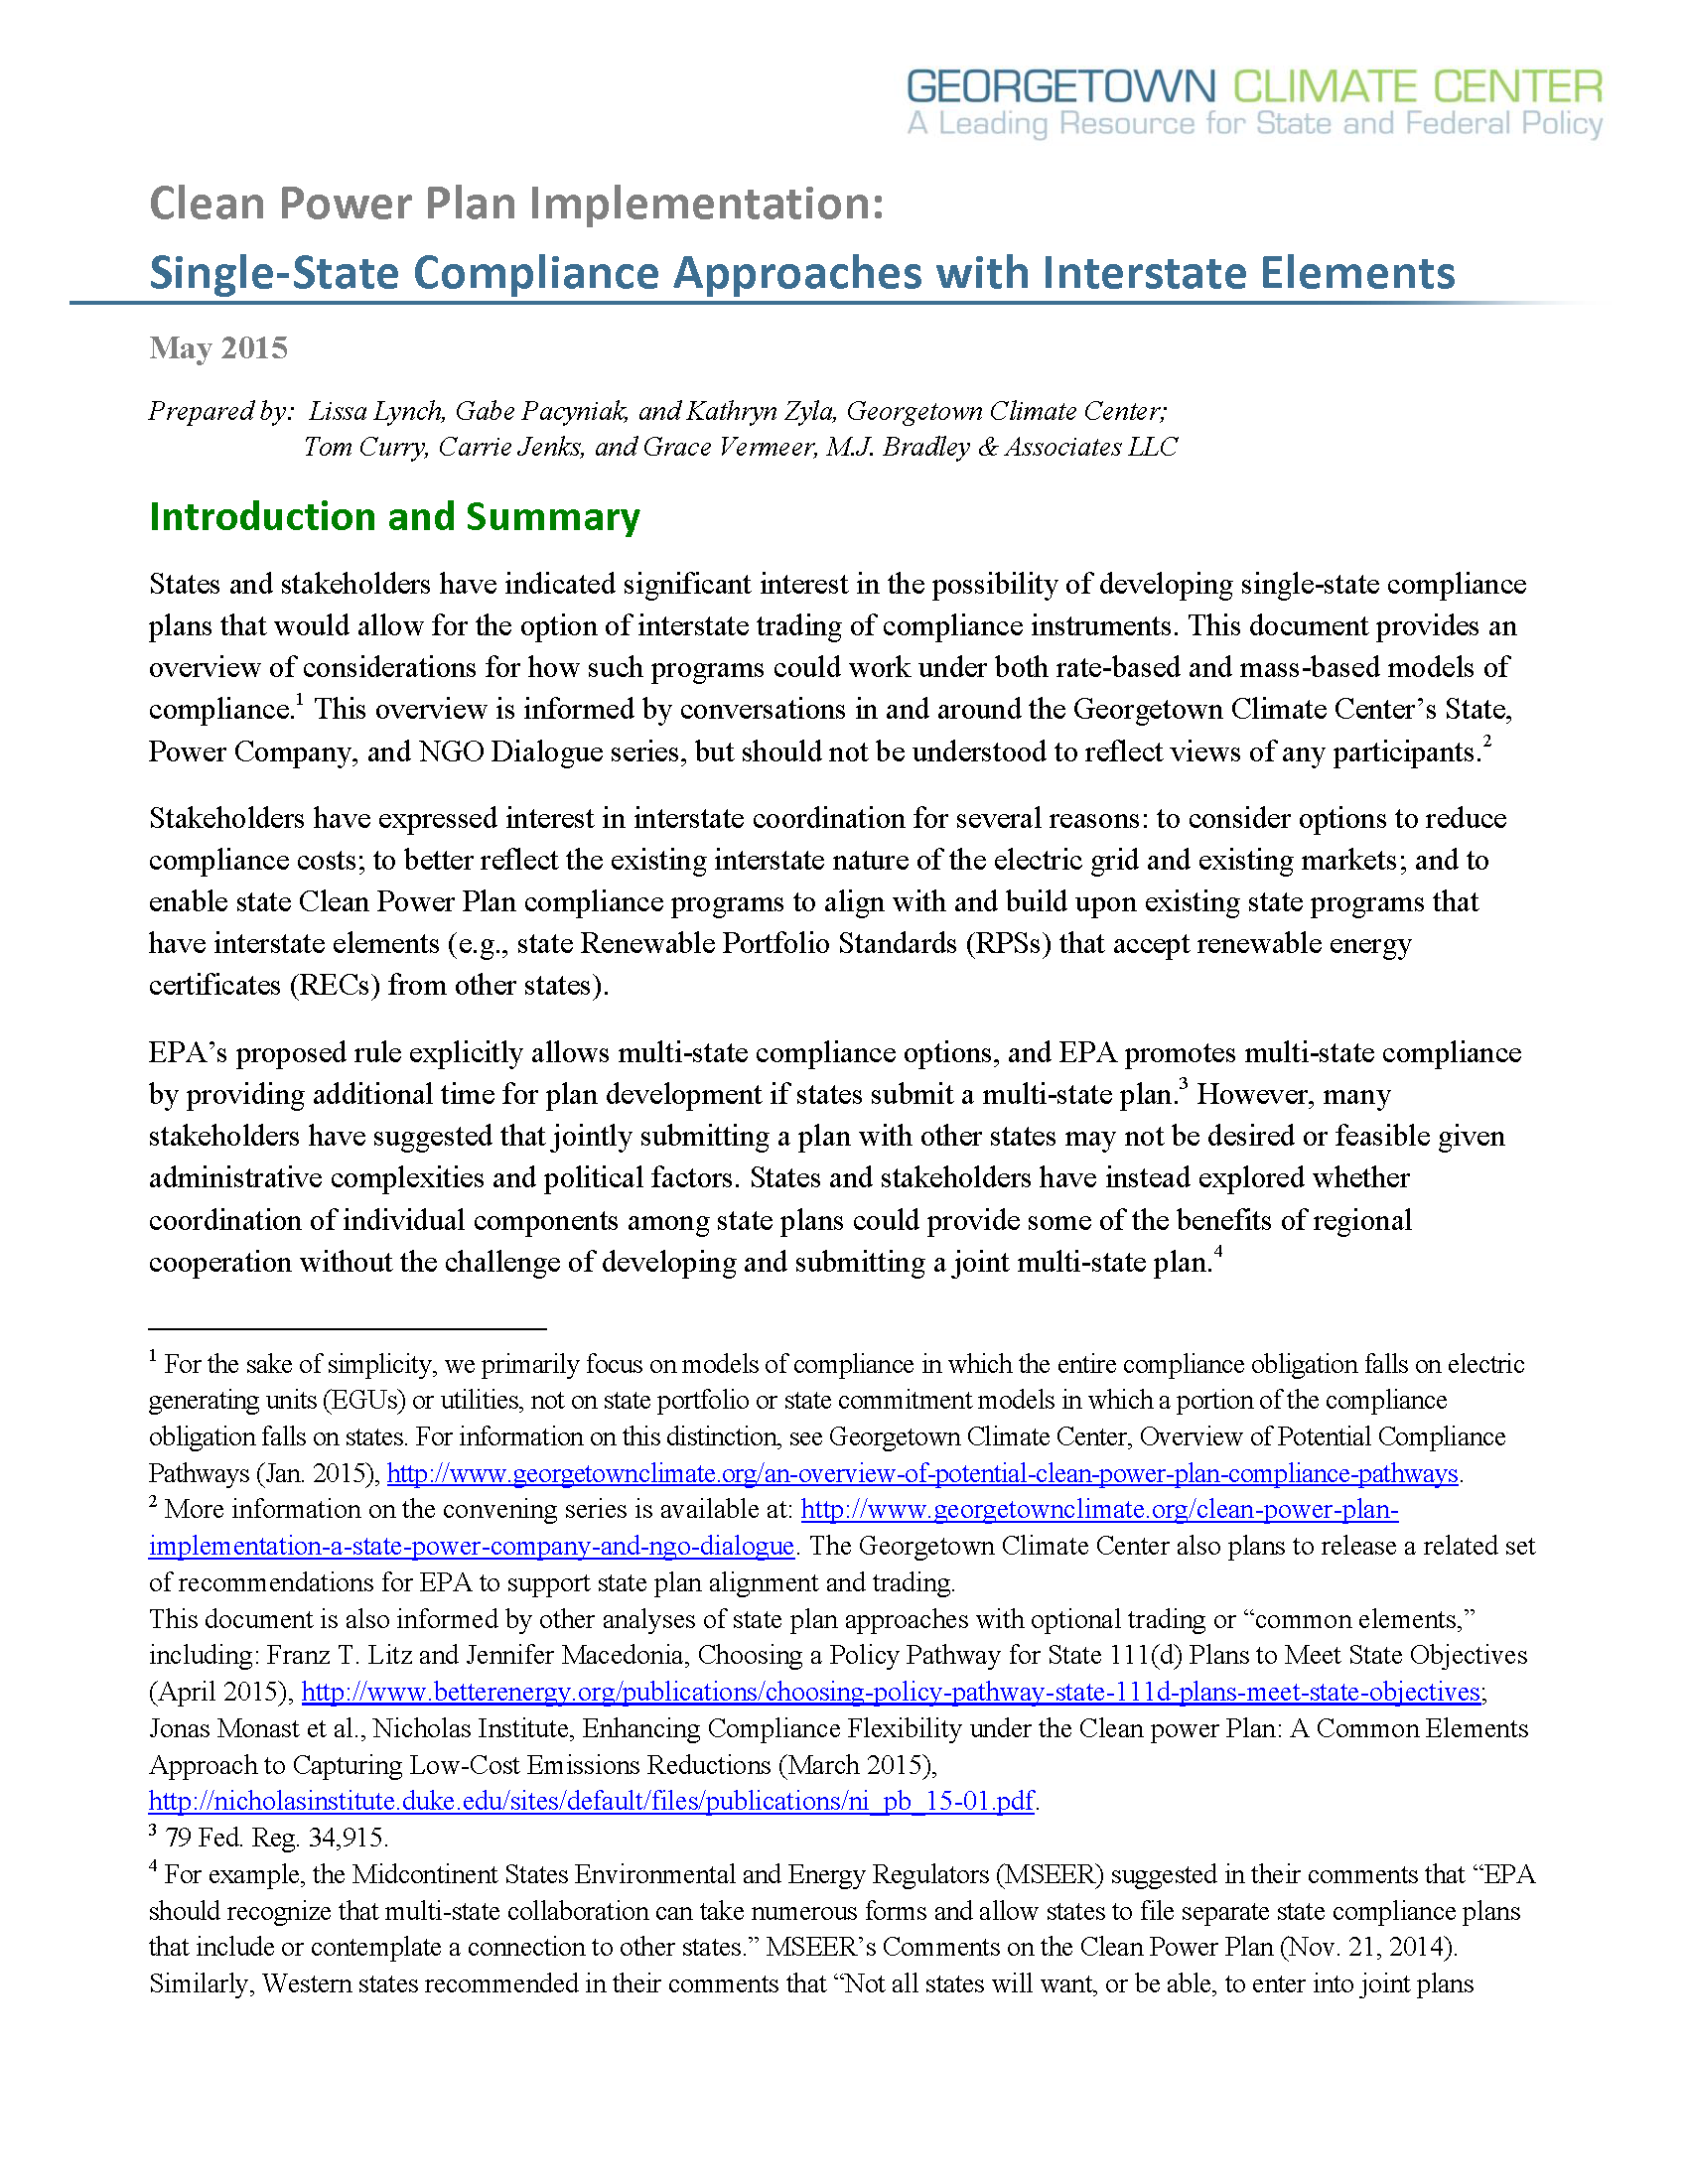 Single State Clean Power Plan Compliance Approaches with Interstate Elements